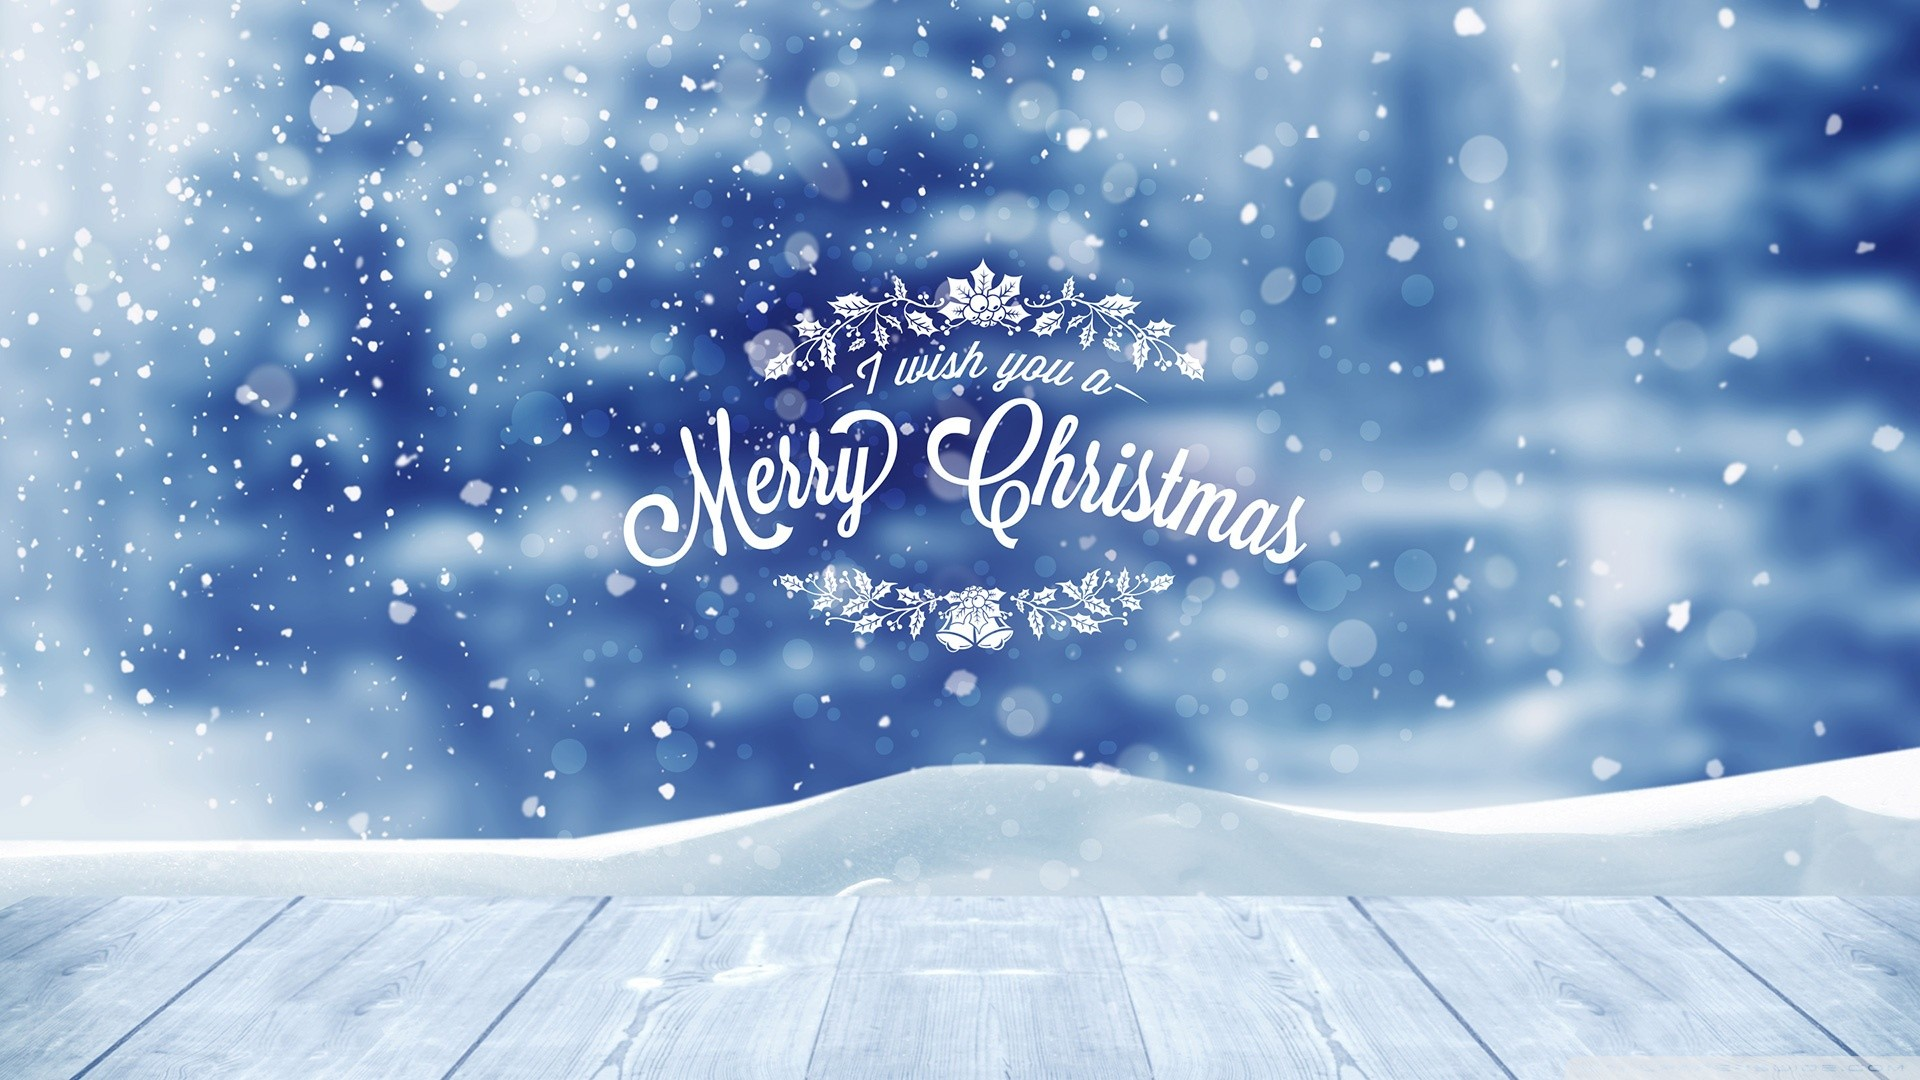 1920x1080 White Christmas Wallpaper 1600x900 : Gif natale cartoline natalizie